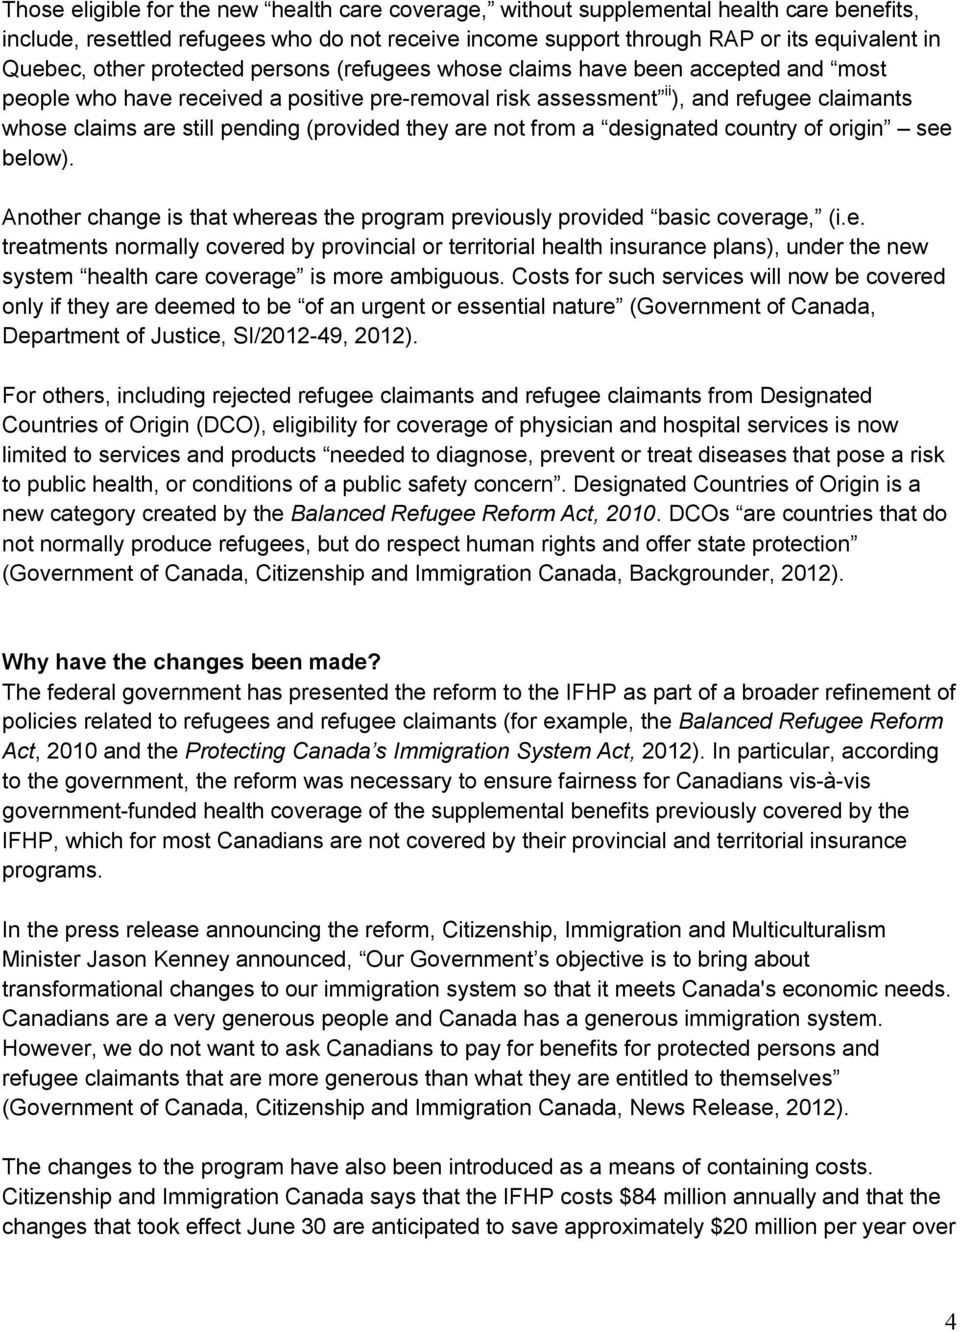 (provided they are not from a designated country of origin see below). Another change is that whereas the program previously provided basic coverage, (i.e. treatments normally covered by provincial or territorial health insurance plans), under the new system health care coverage is more ambiguous.